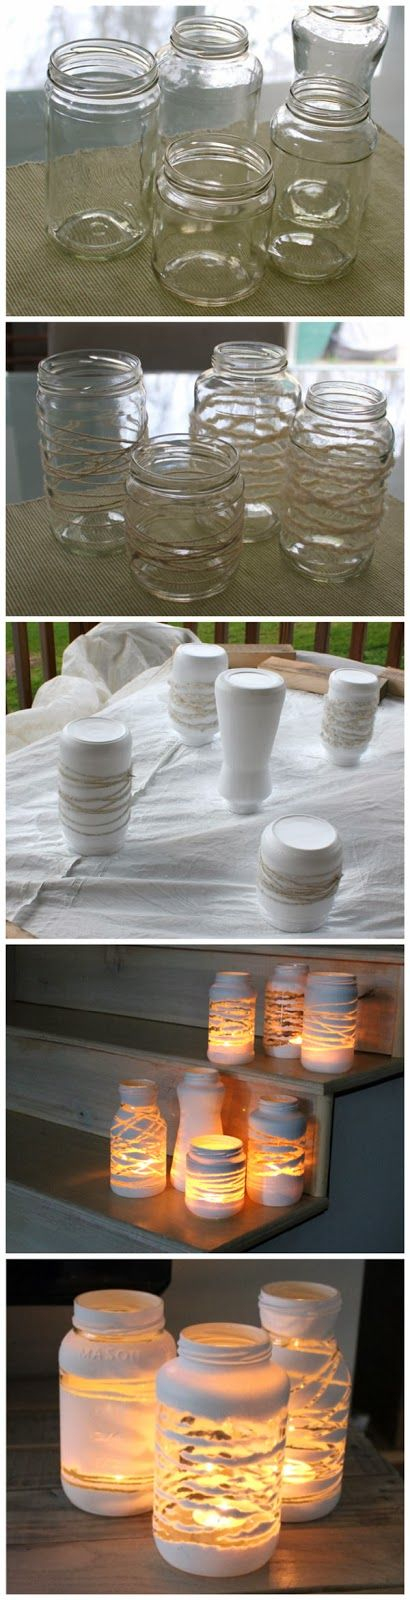 joybobo: yarn wrapped painted jars